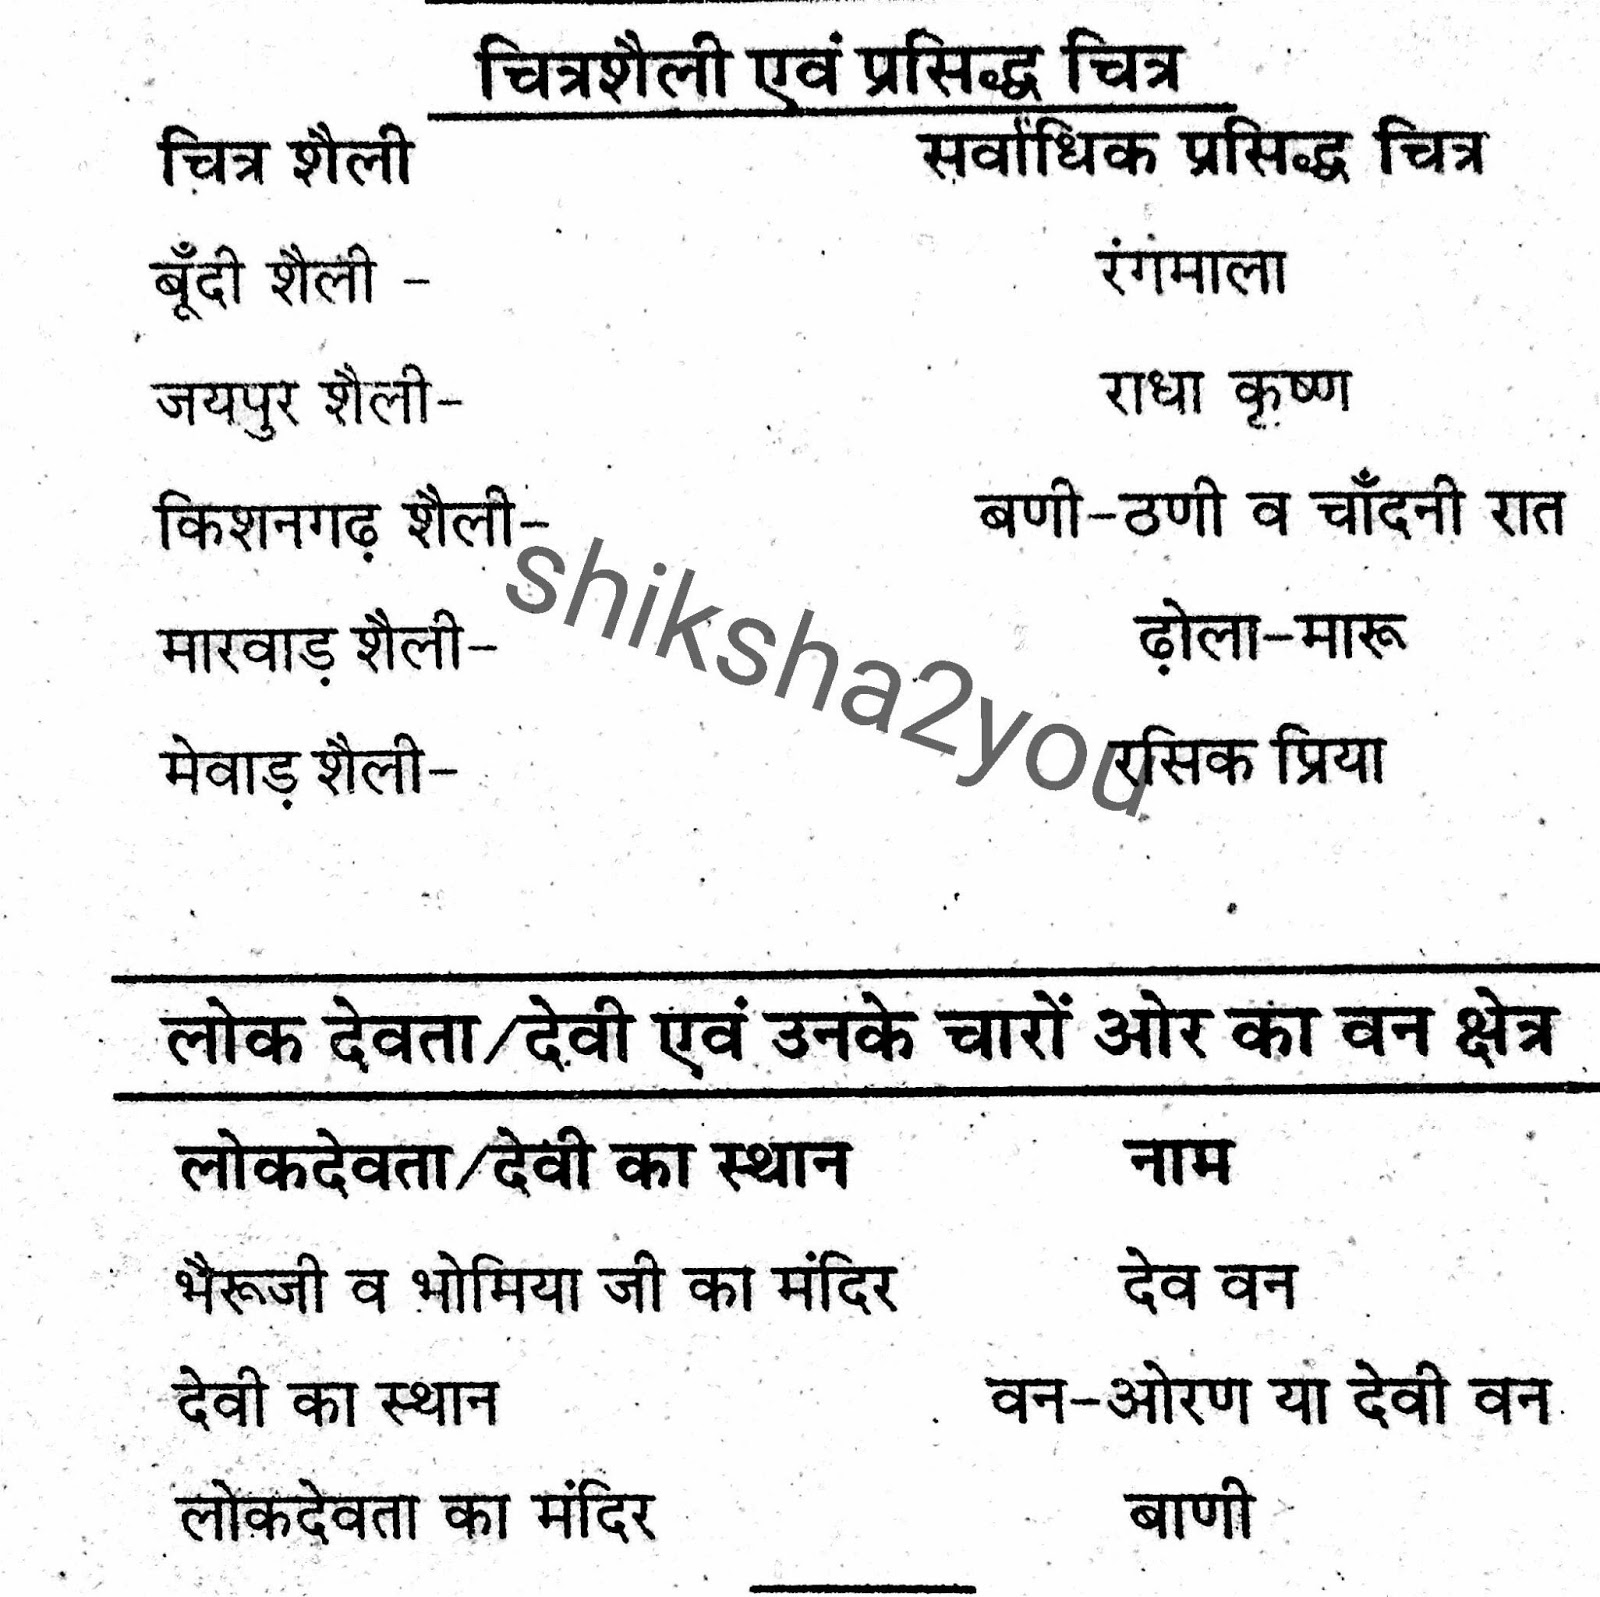 rajasthan current gk in hindi pdf free download